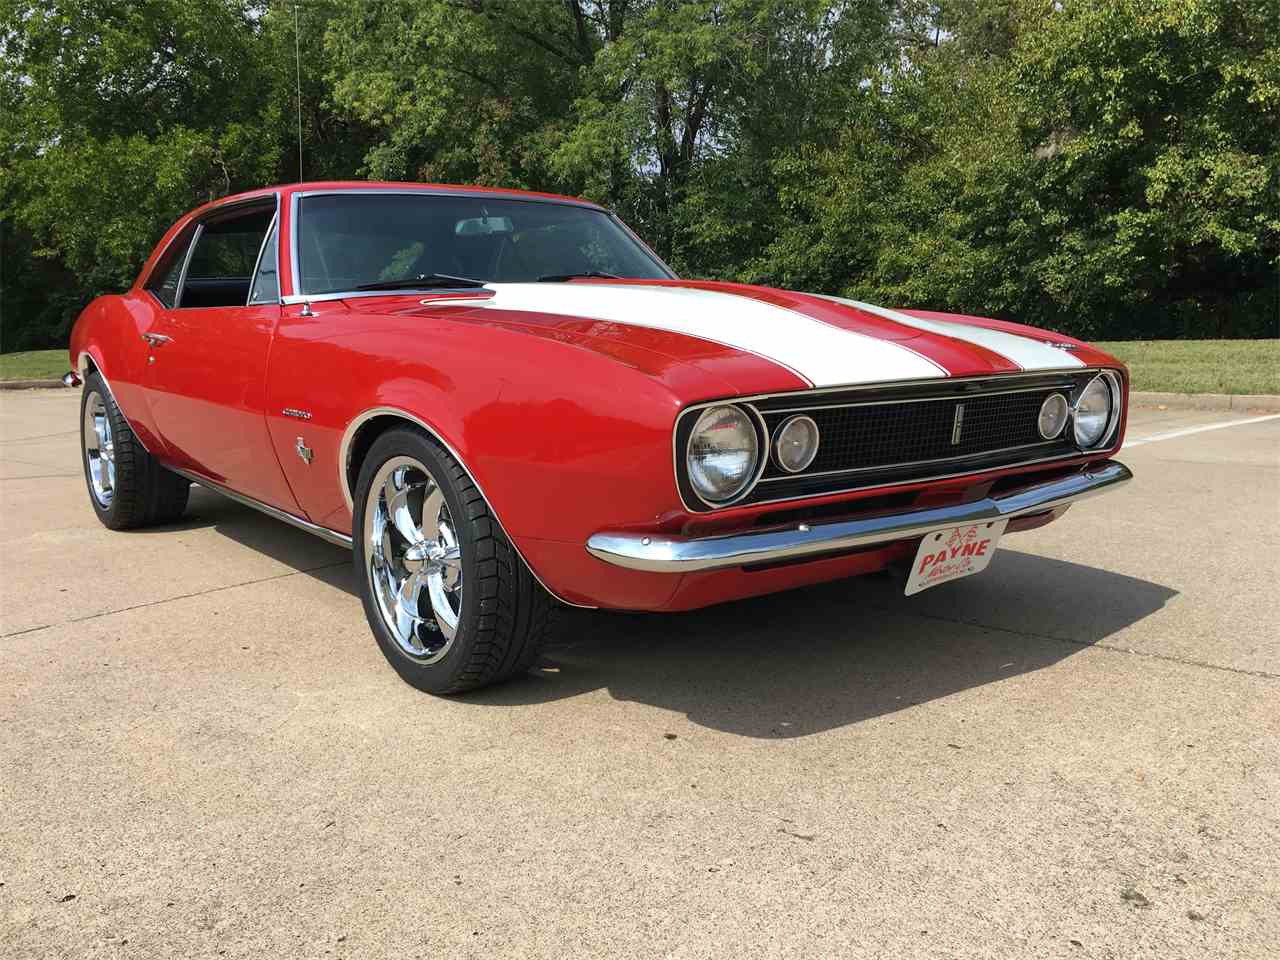 Large Picture of '67 Camaro - $36,000.00 Offered by Payne Motor Co. - LUOH